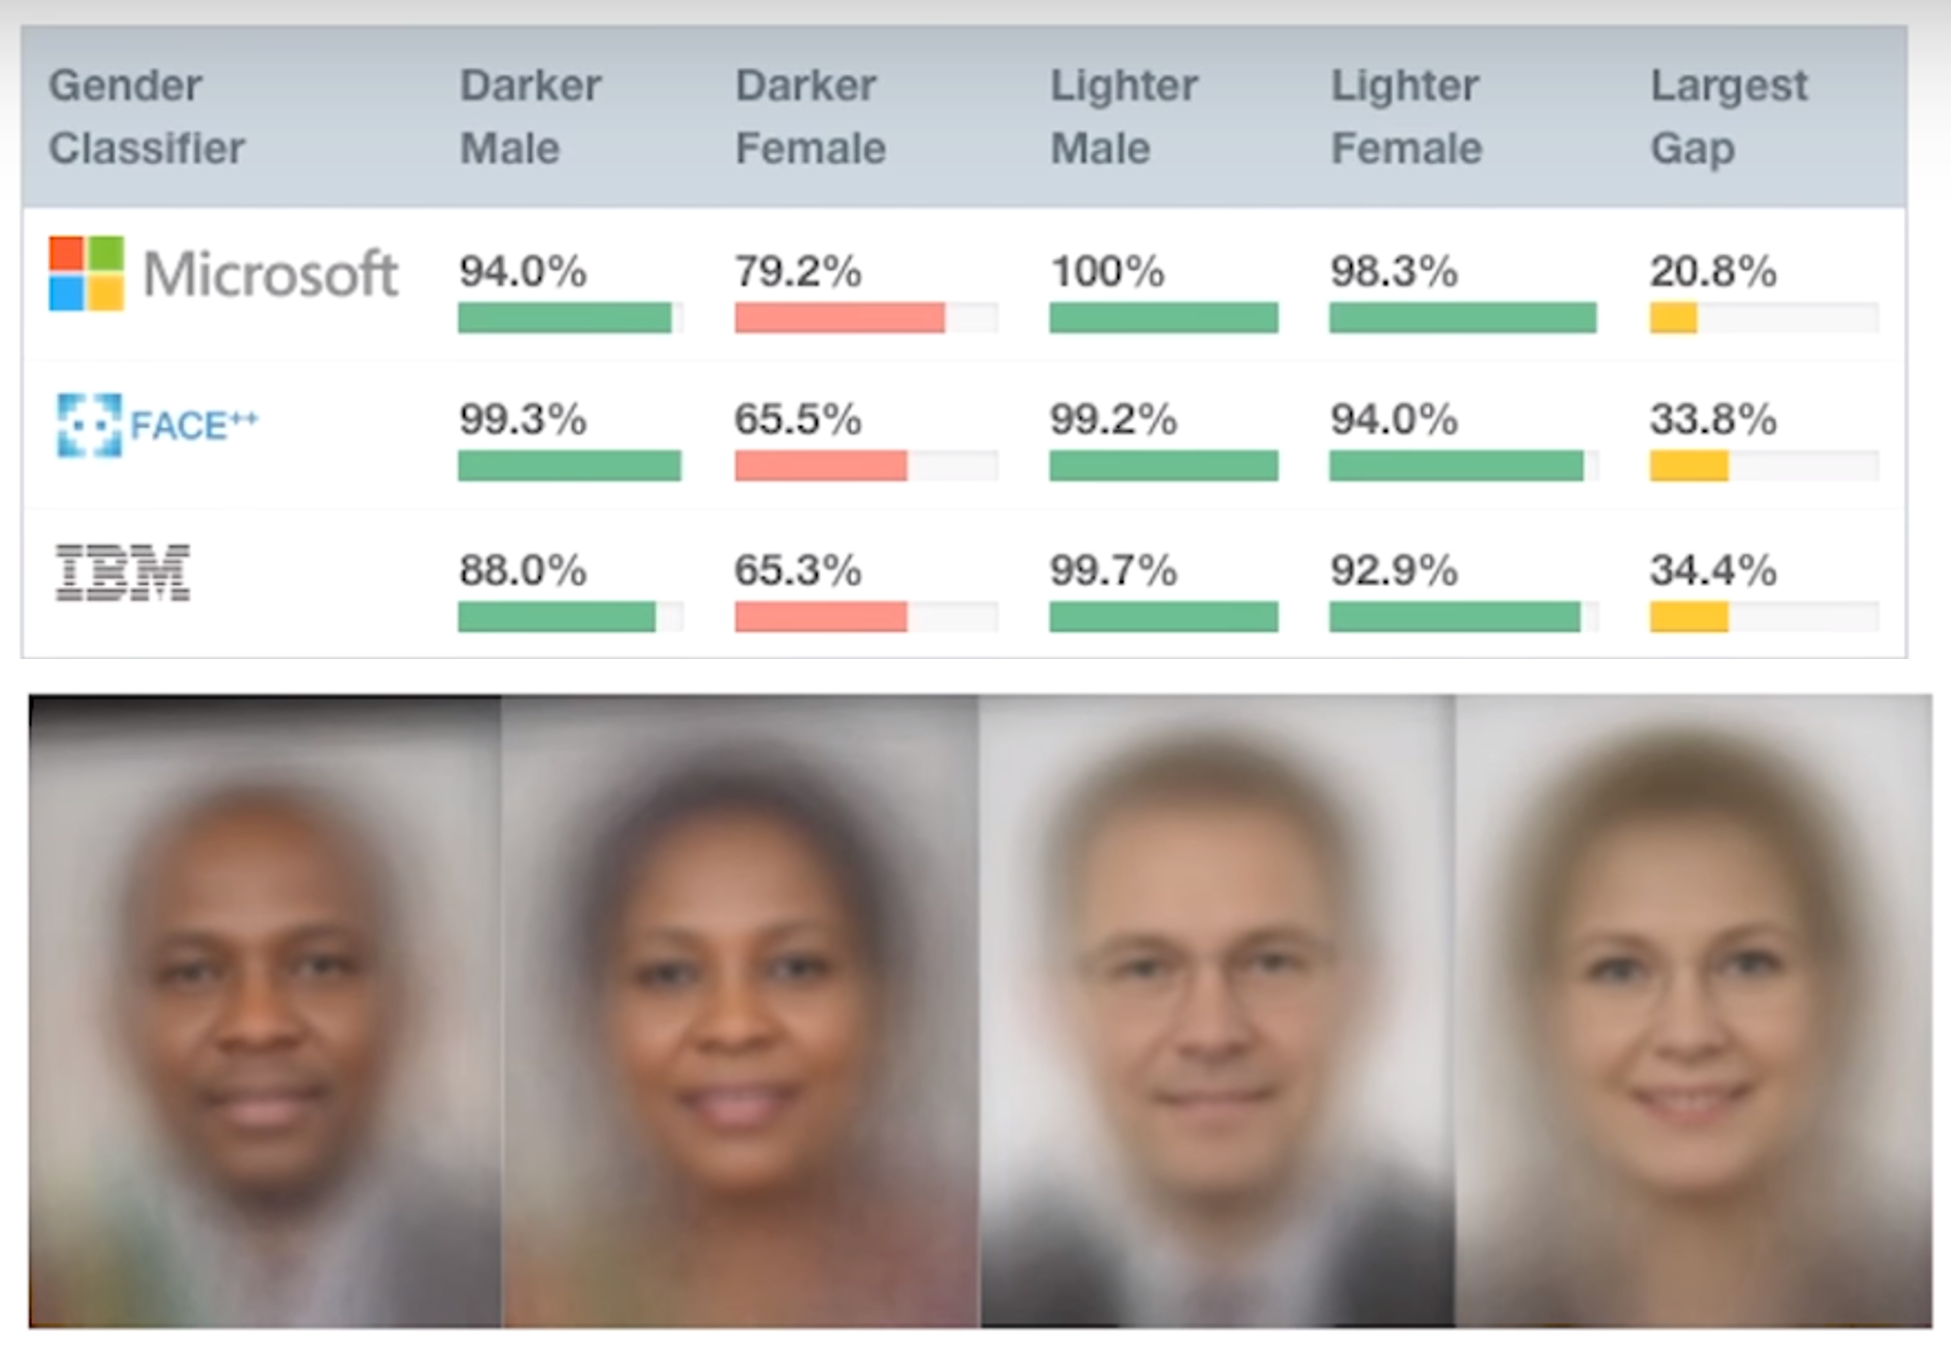 Research by Joy Buolamwini and Timnit Gebru found that commercial computer vision software performed significantly worse on women with dark skin. Gendershades.org